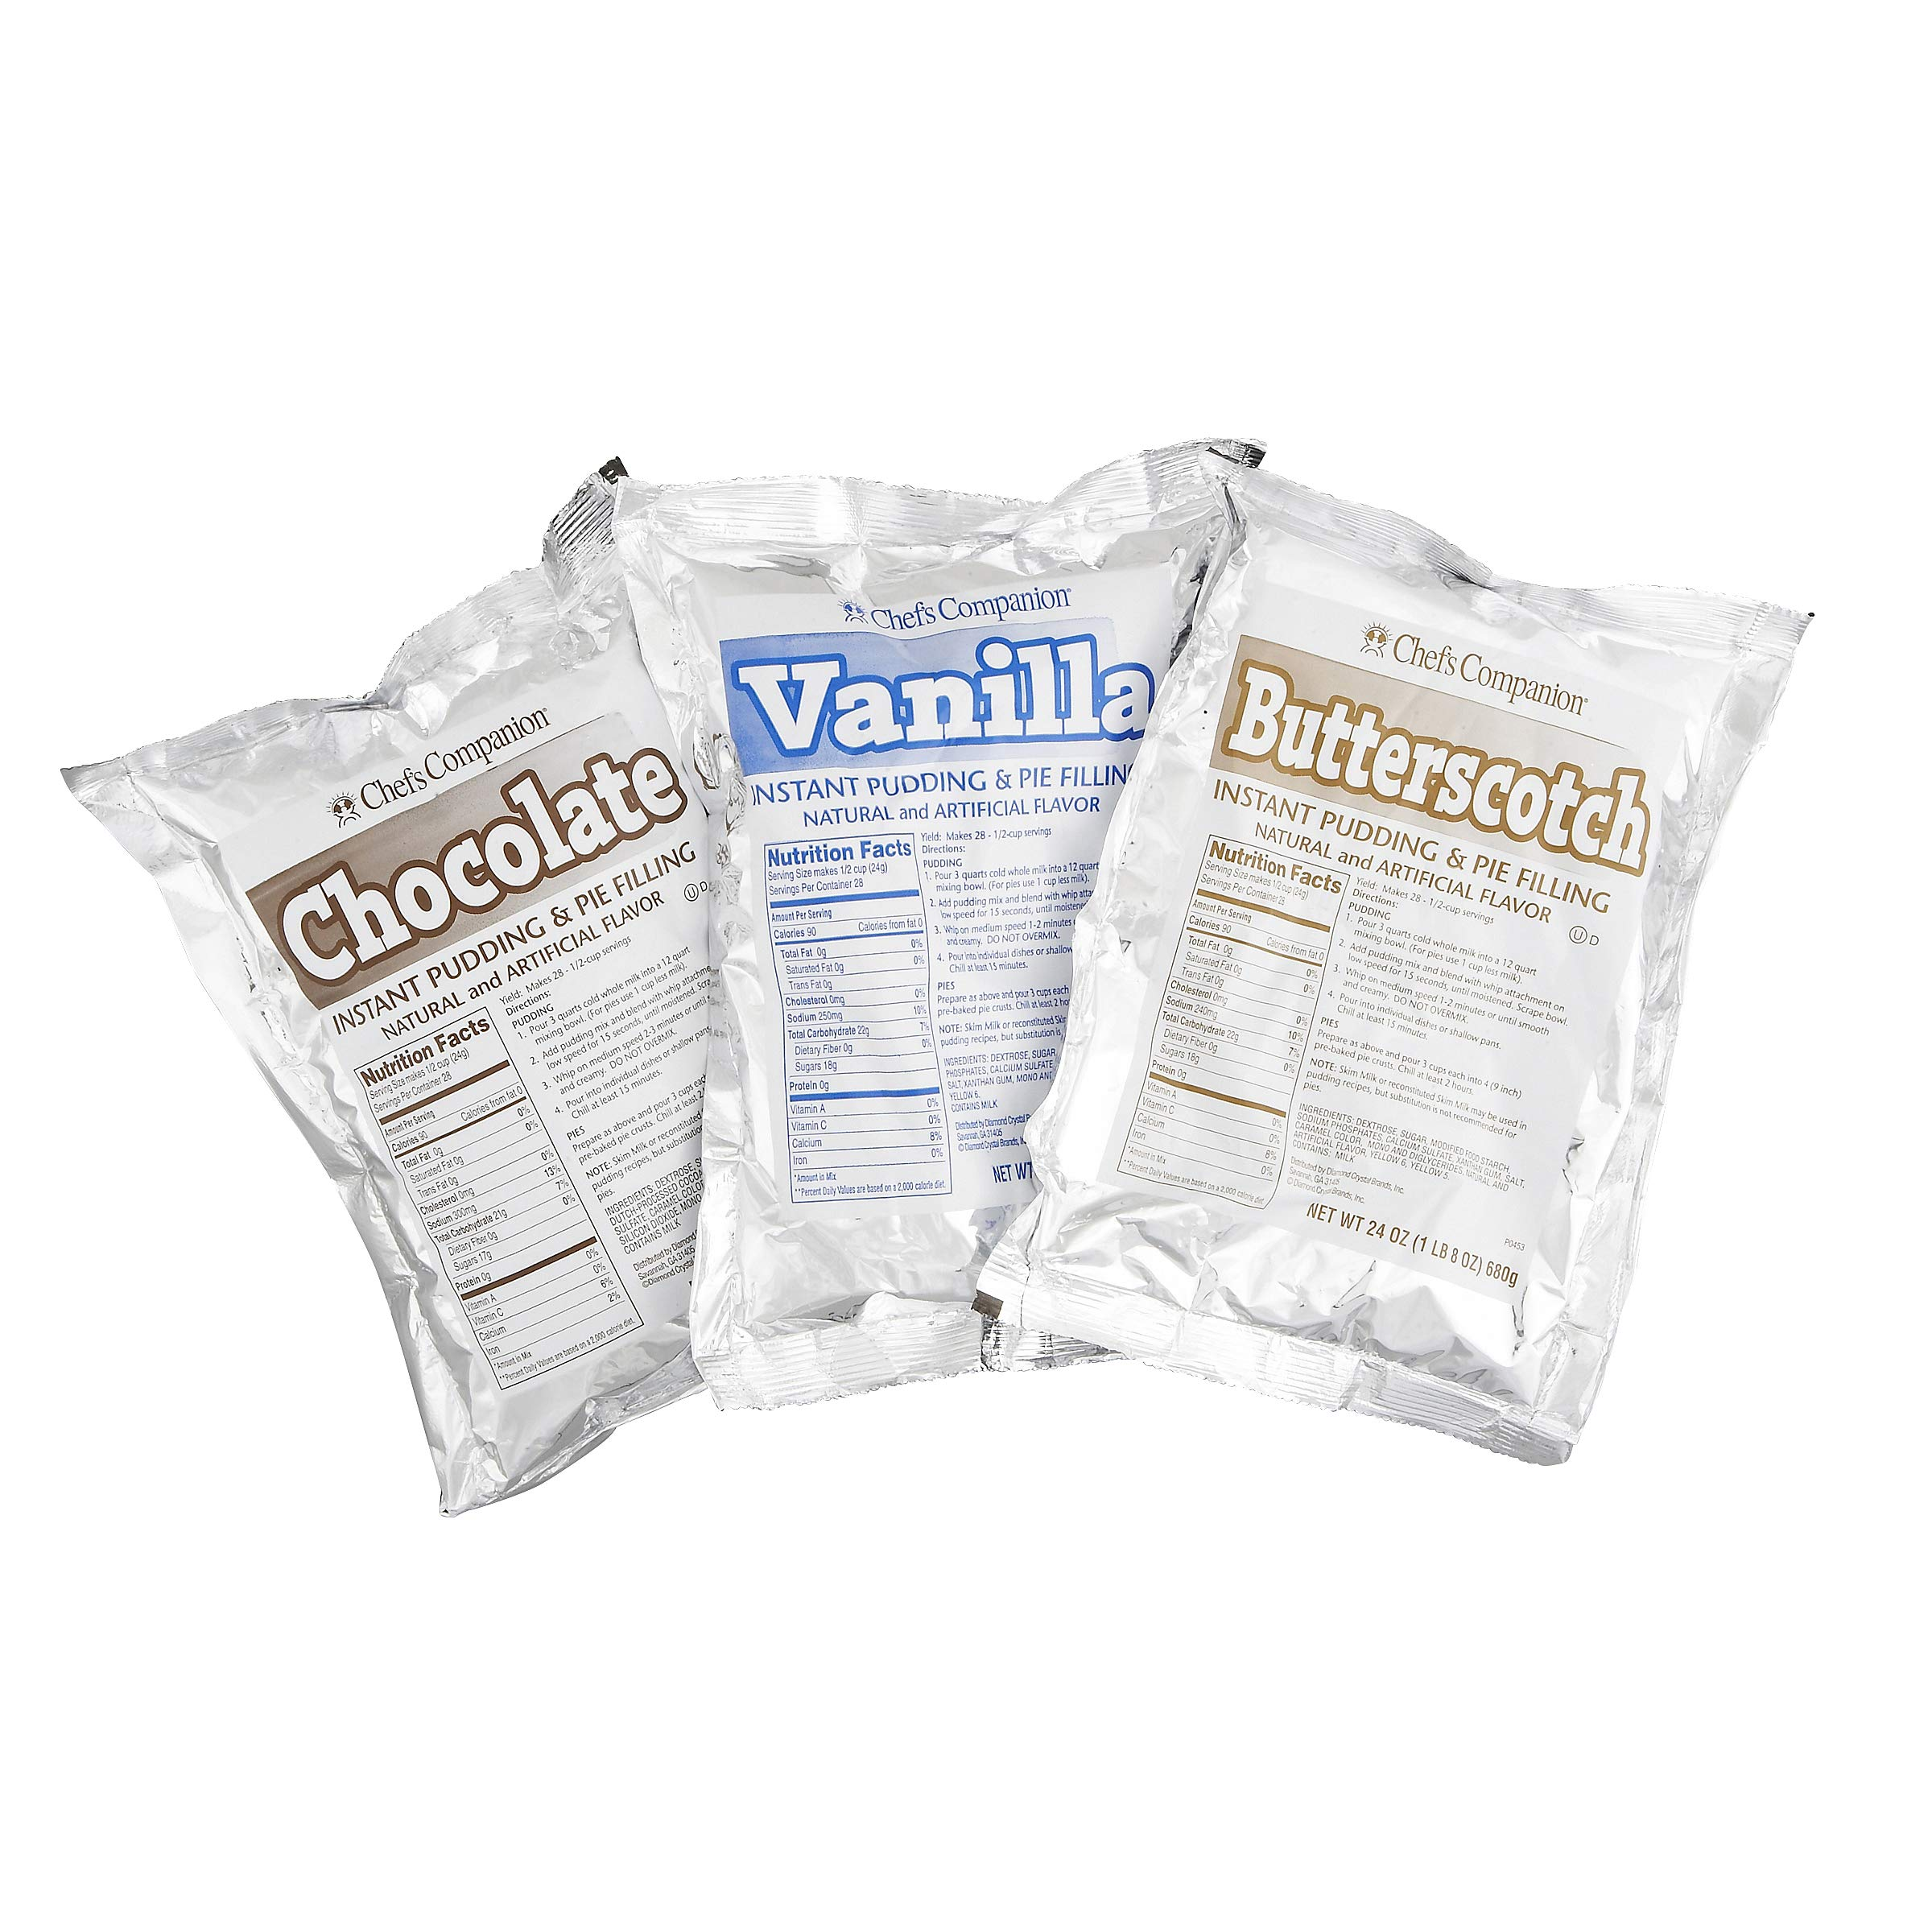 Chef's Companion Assorted Instant Pudding Mix (Chocolate, Vanilla, Butterscotch) 24 Oz, (Pack of 12)